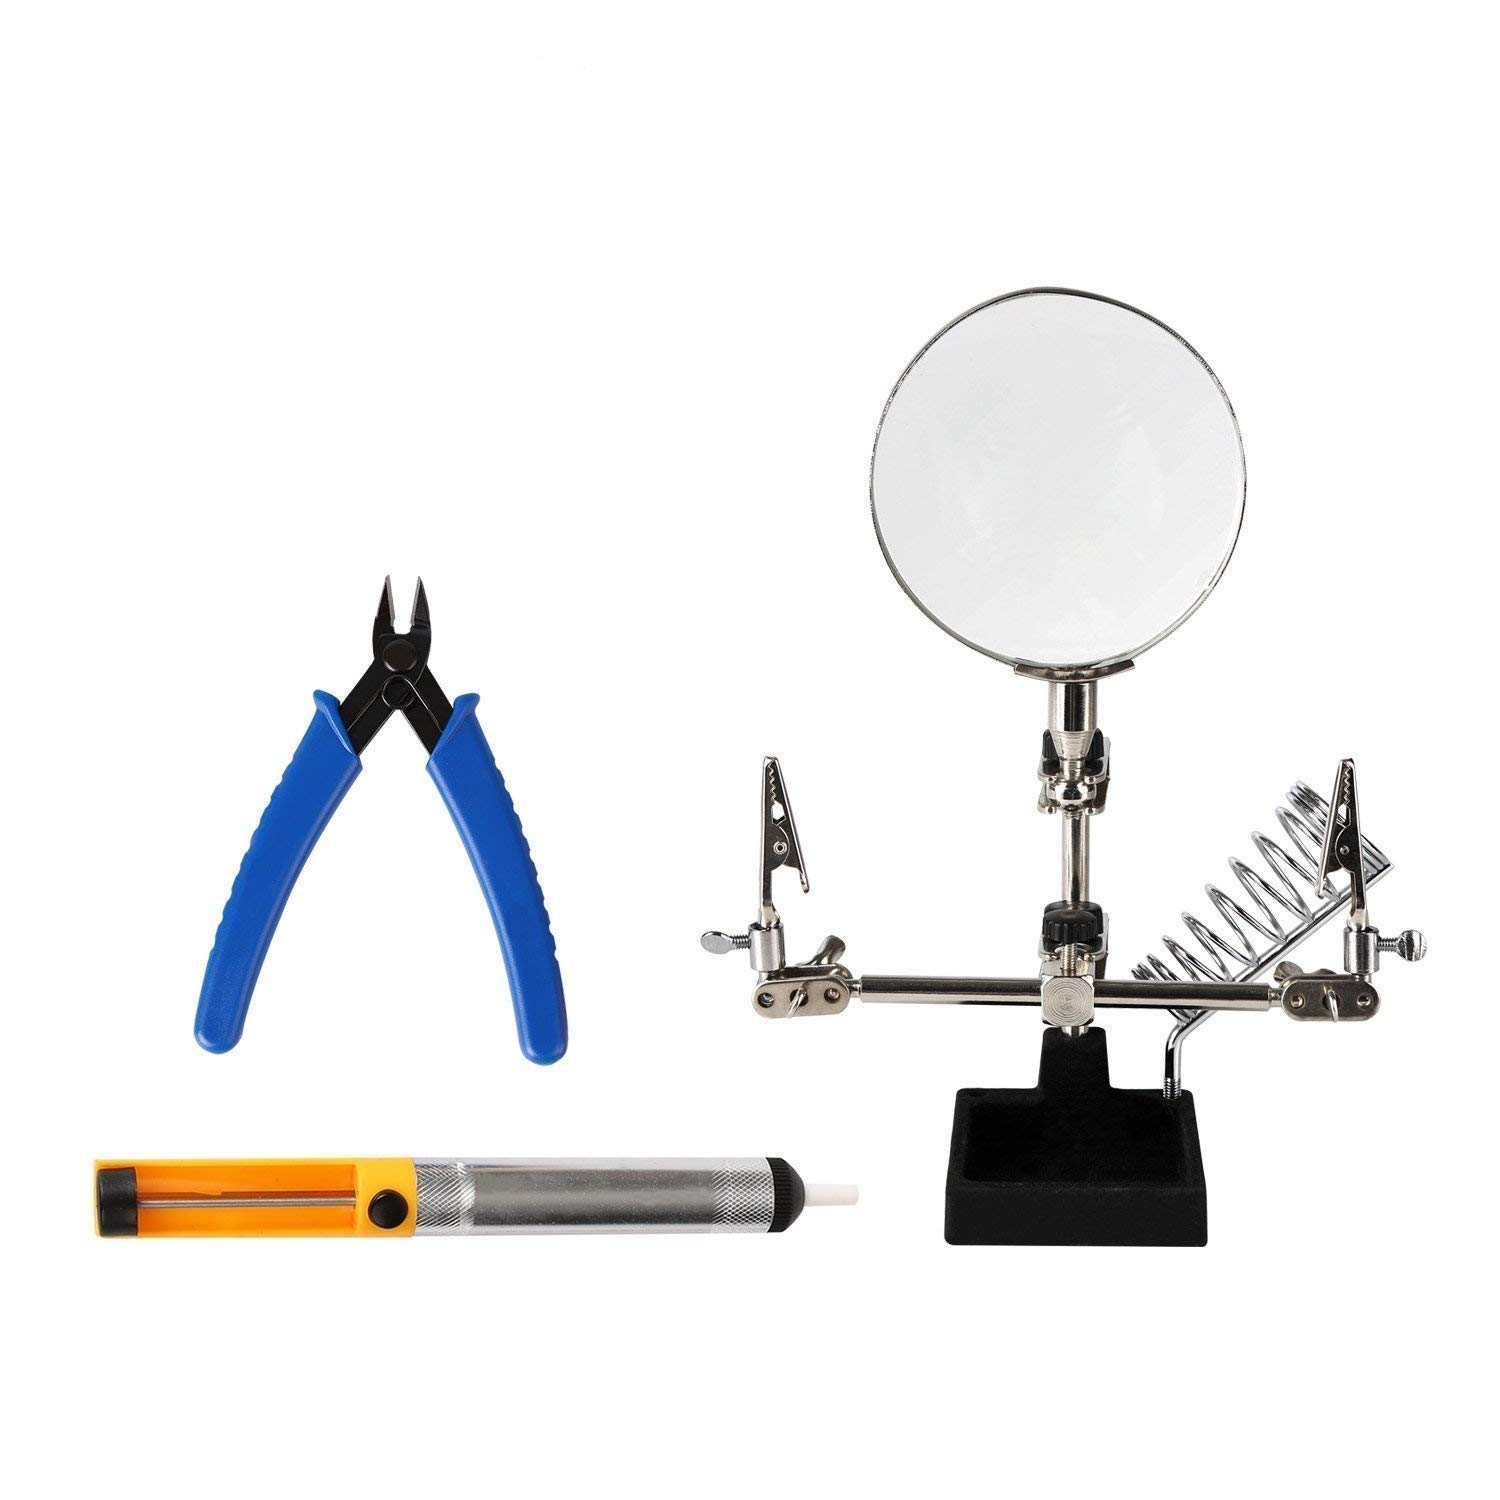 Repair Tools 3 in 1 Repair Set Helping Hands Magnifying Glass Desoldering Pump and Wire Cutter Pliers with High Precision Professional and Ideal Soldering Tools By Kaisi